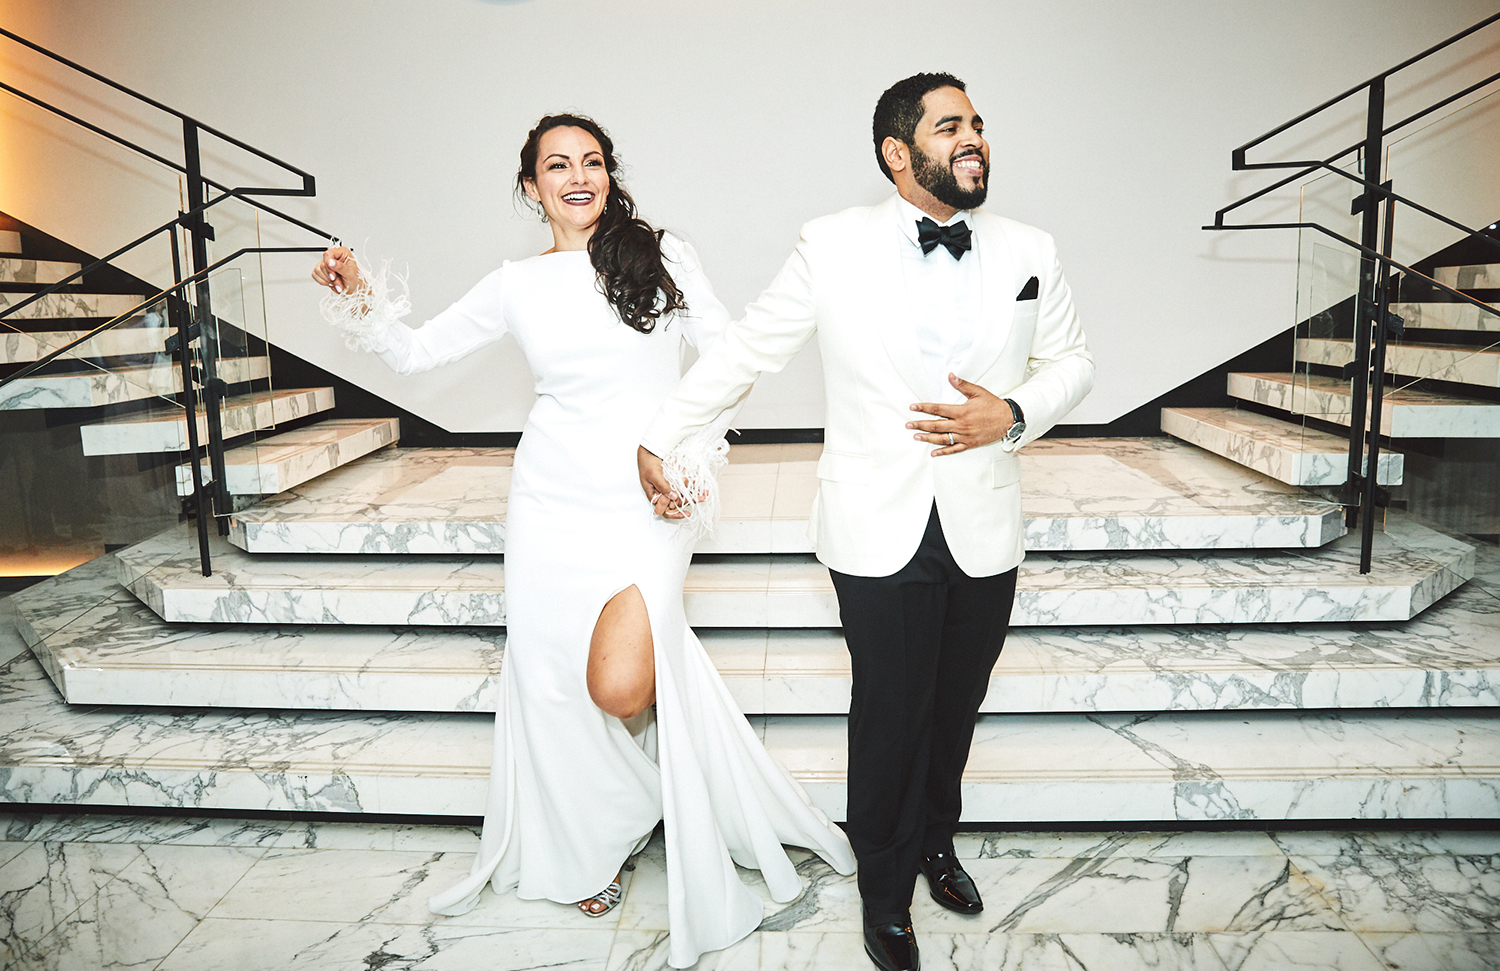 170930_WilliamValeWeddingPhotography_BrooklynWeddingPhotographer_By_BriJohnsonWeddings_0143.jpg